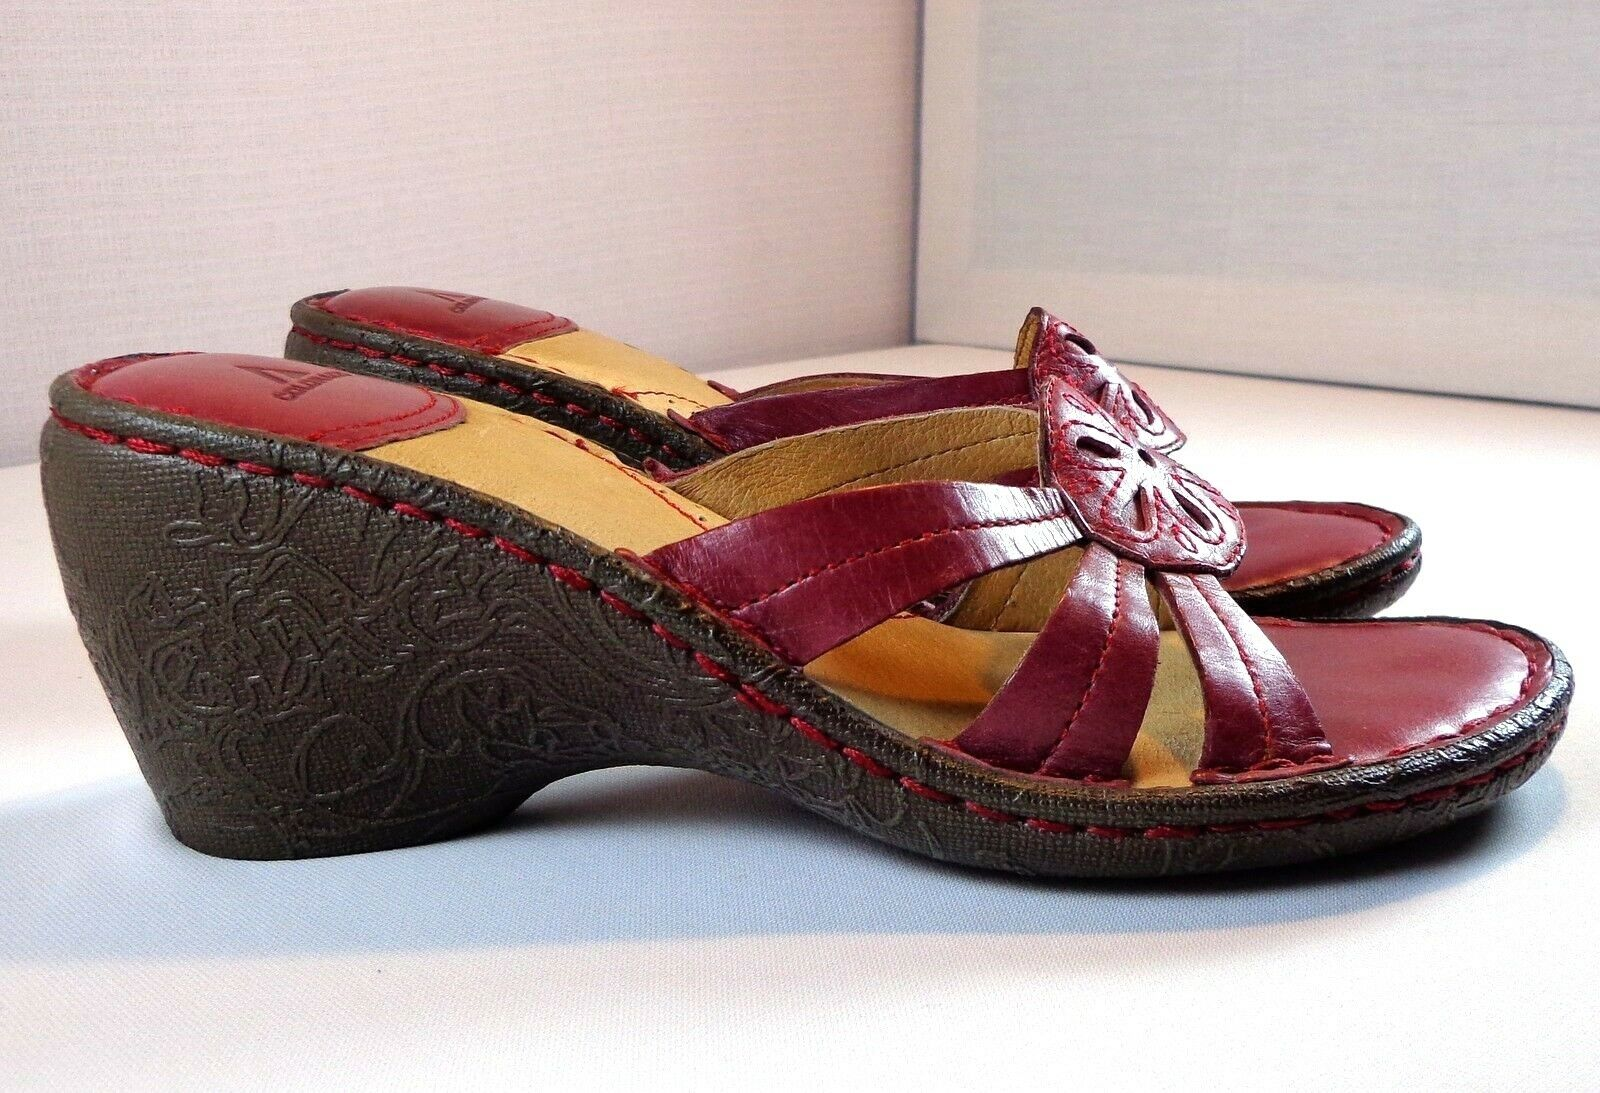 colorado Wedge Sandals Womens Red Leather Size 7 Slip On shoes